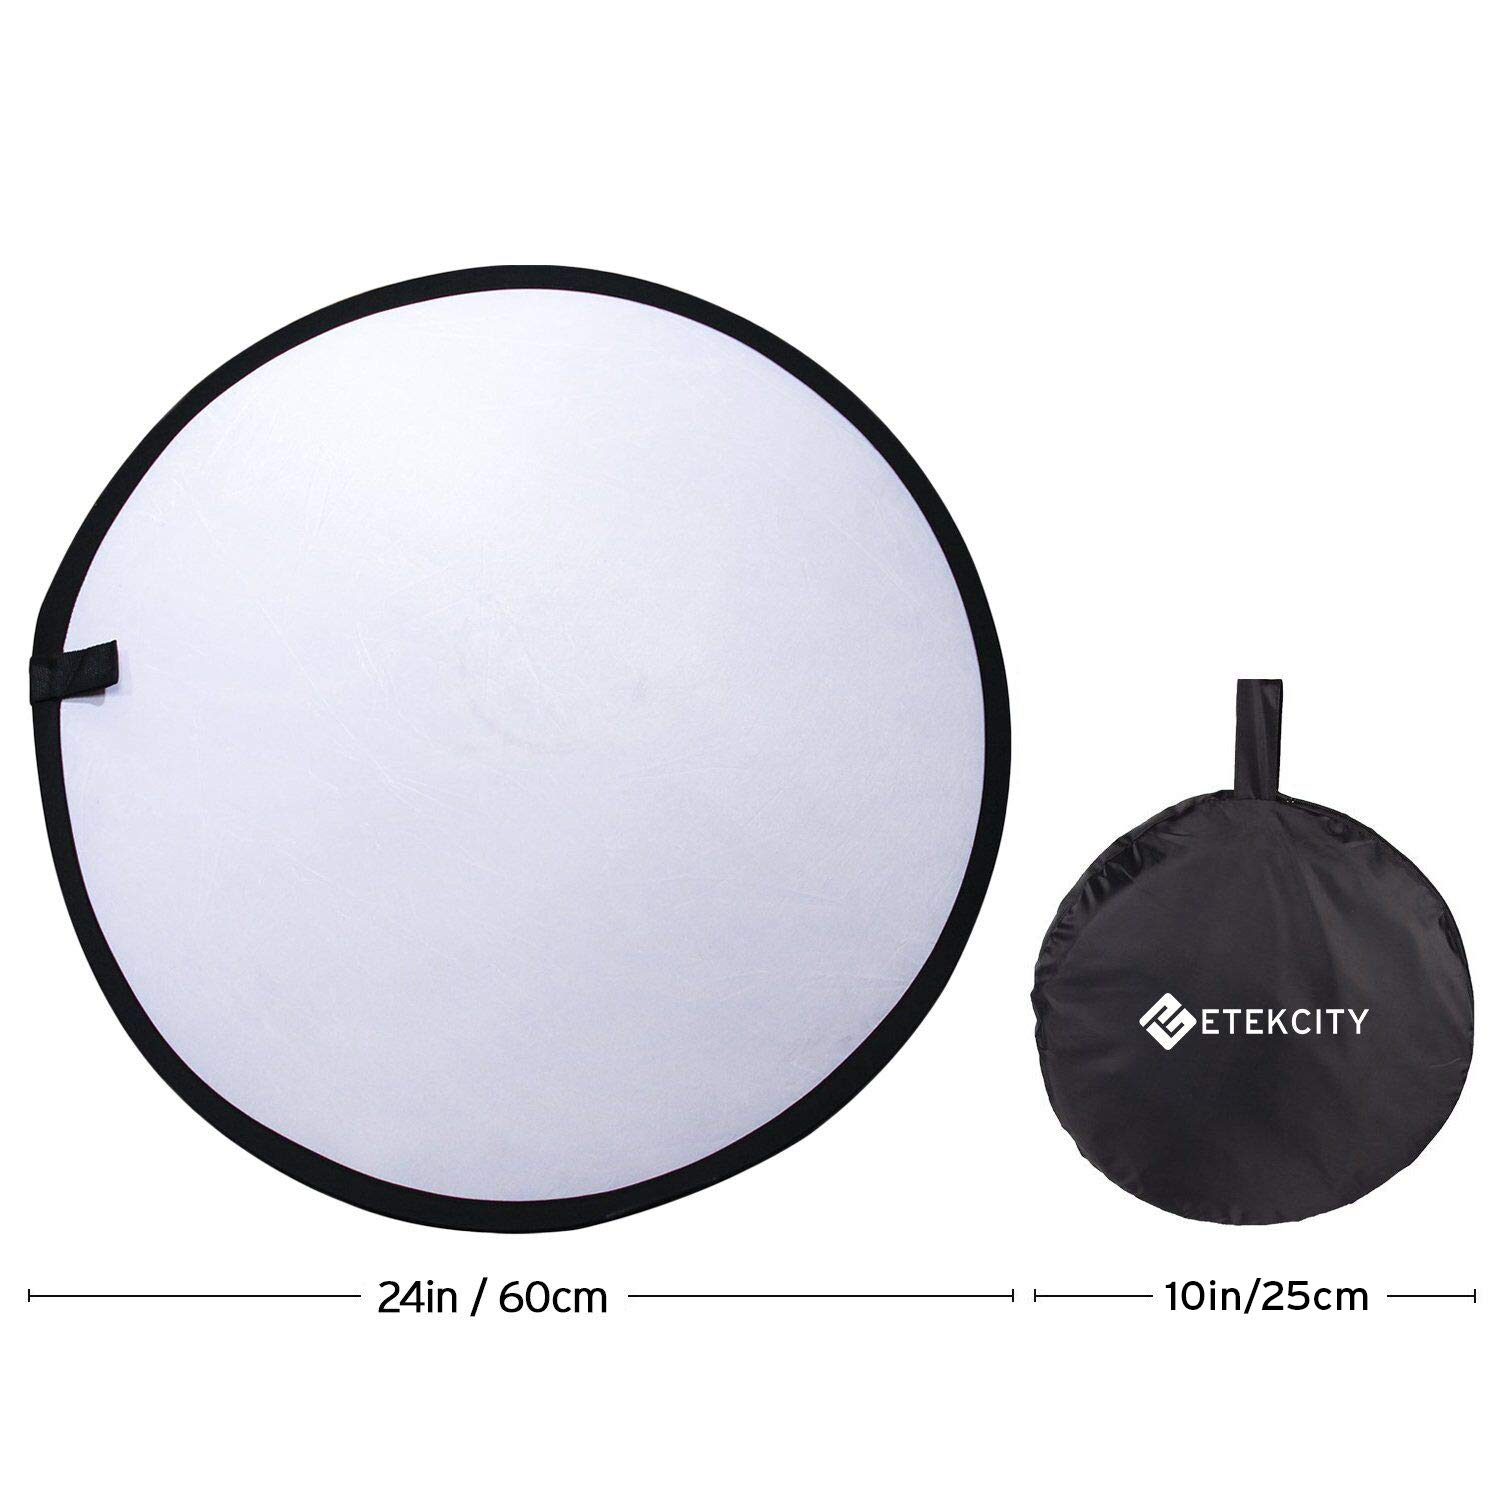 Etekcity 24'' (60cm) 5-in-1 Photography Reflector Light Reflectors for Photography Multi-Disc Photo Reflector Collapsible with Bag - Translucent, Silver, Gold, White and Black by Etekcity